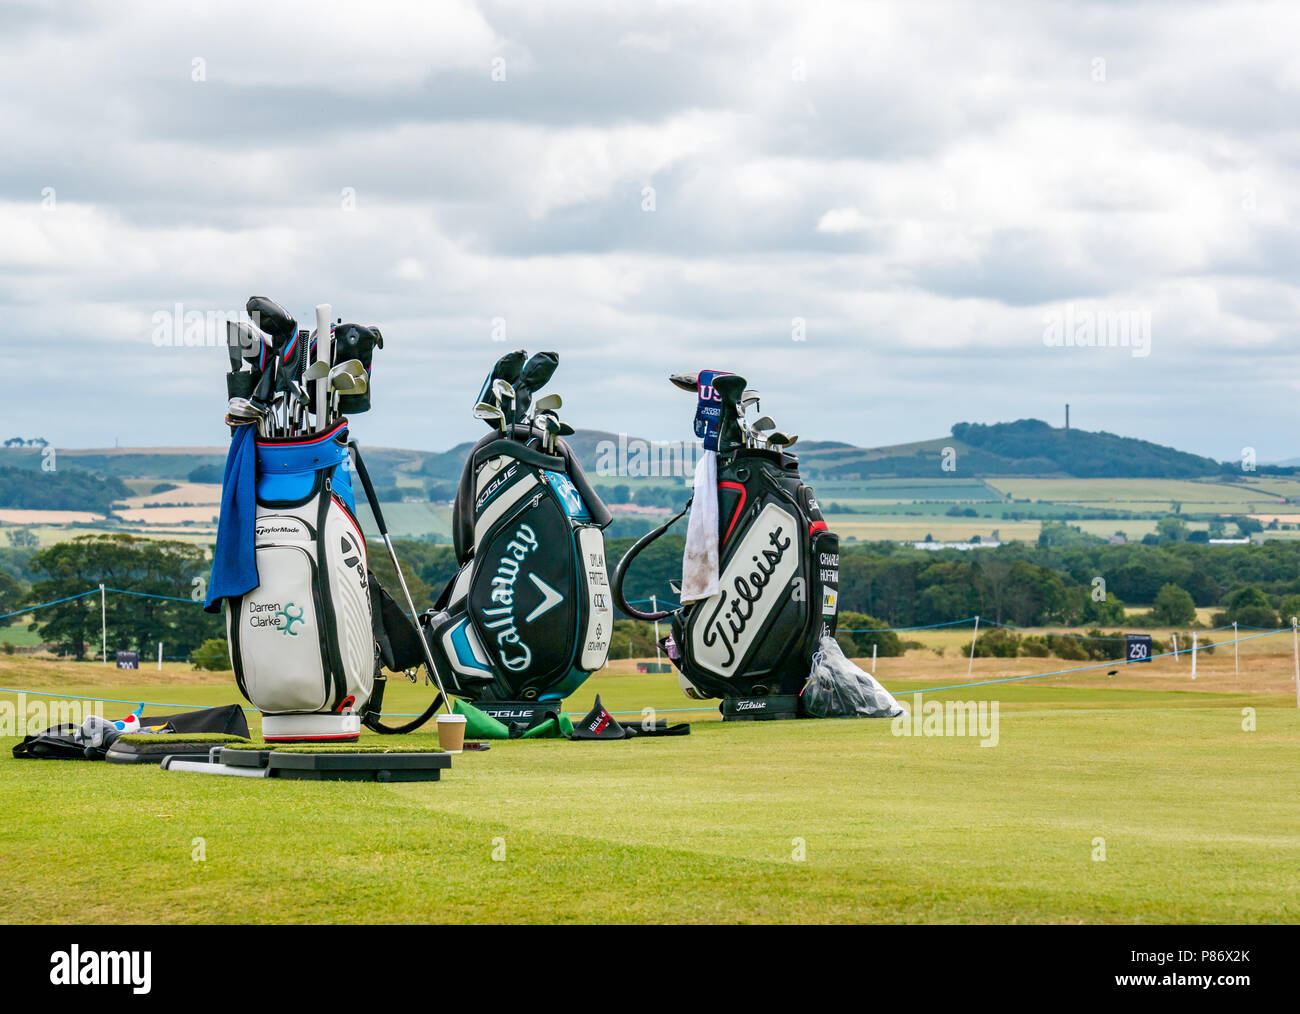 gullane-uk-10th-july-2018-aberdeen-stand